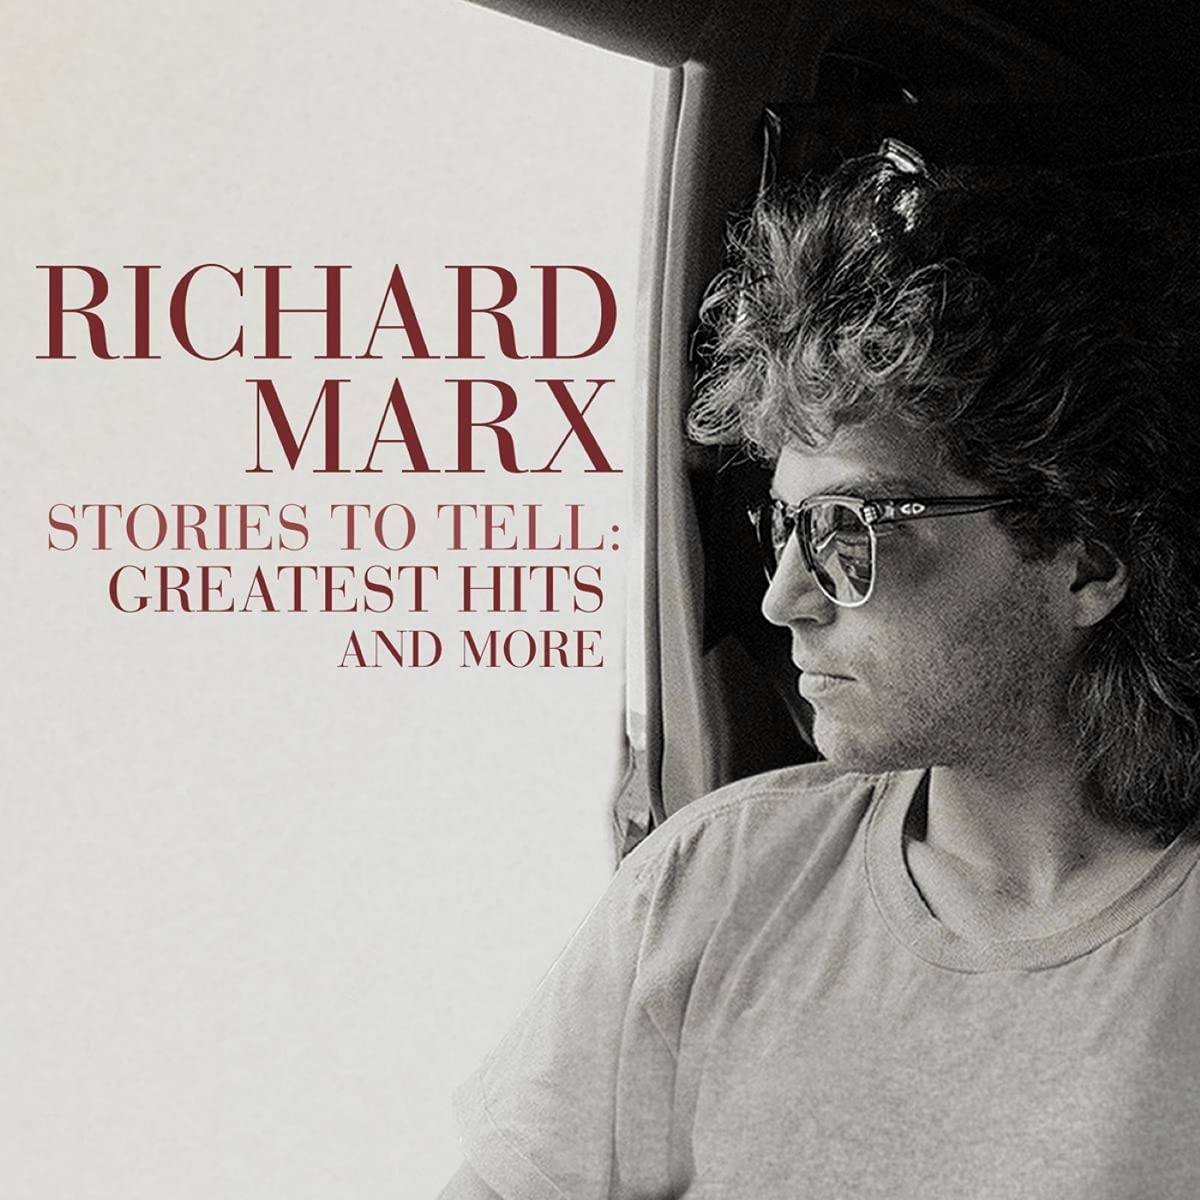 Richard Marx / Stories to Tell: Greatest Hits and more - 2CD set